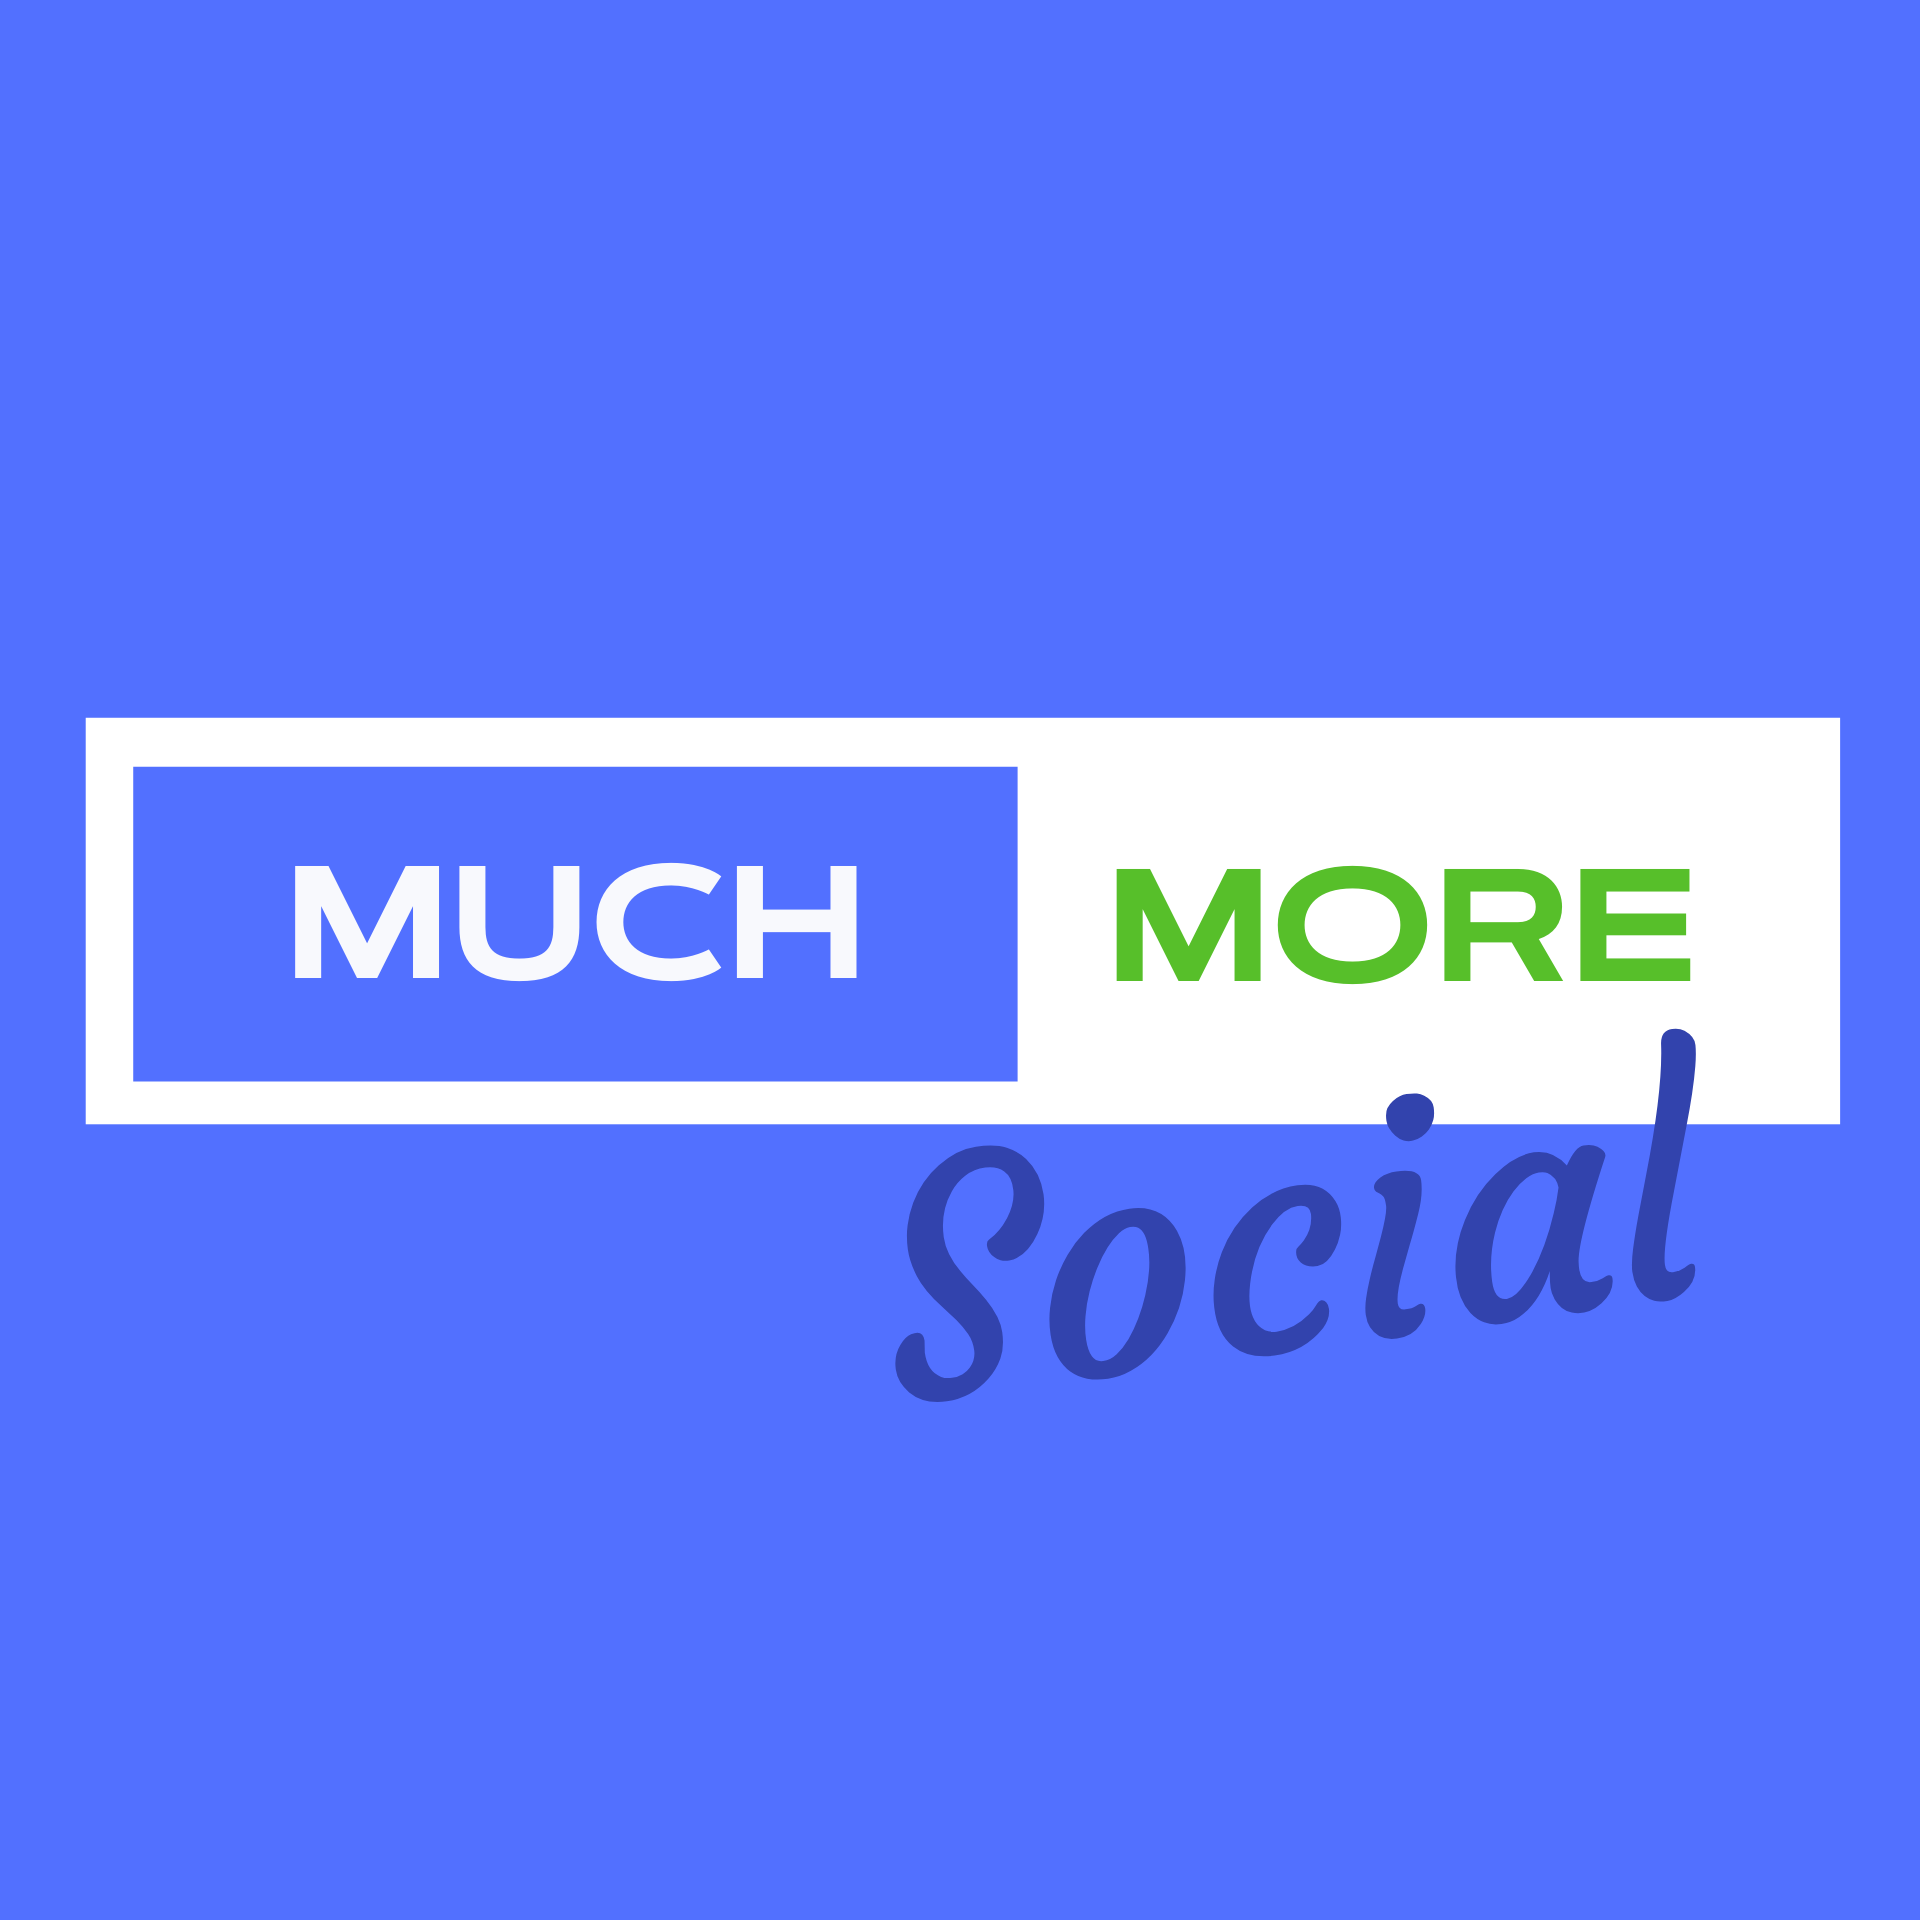 Much More Social